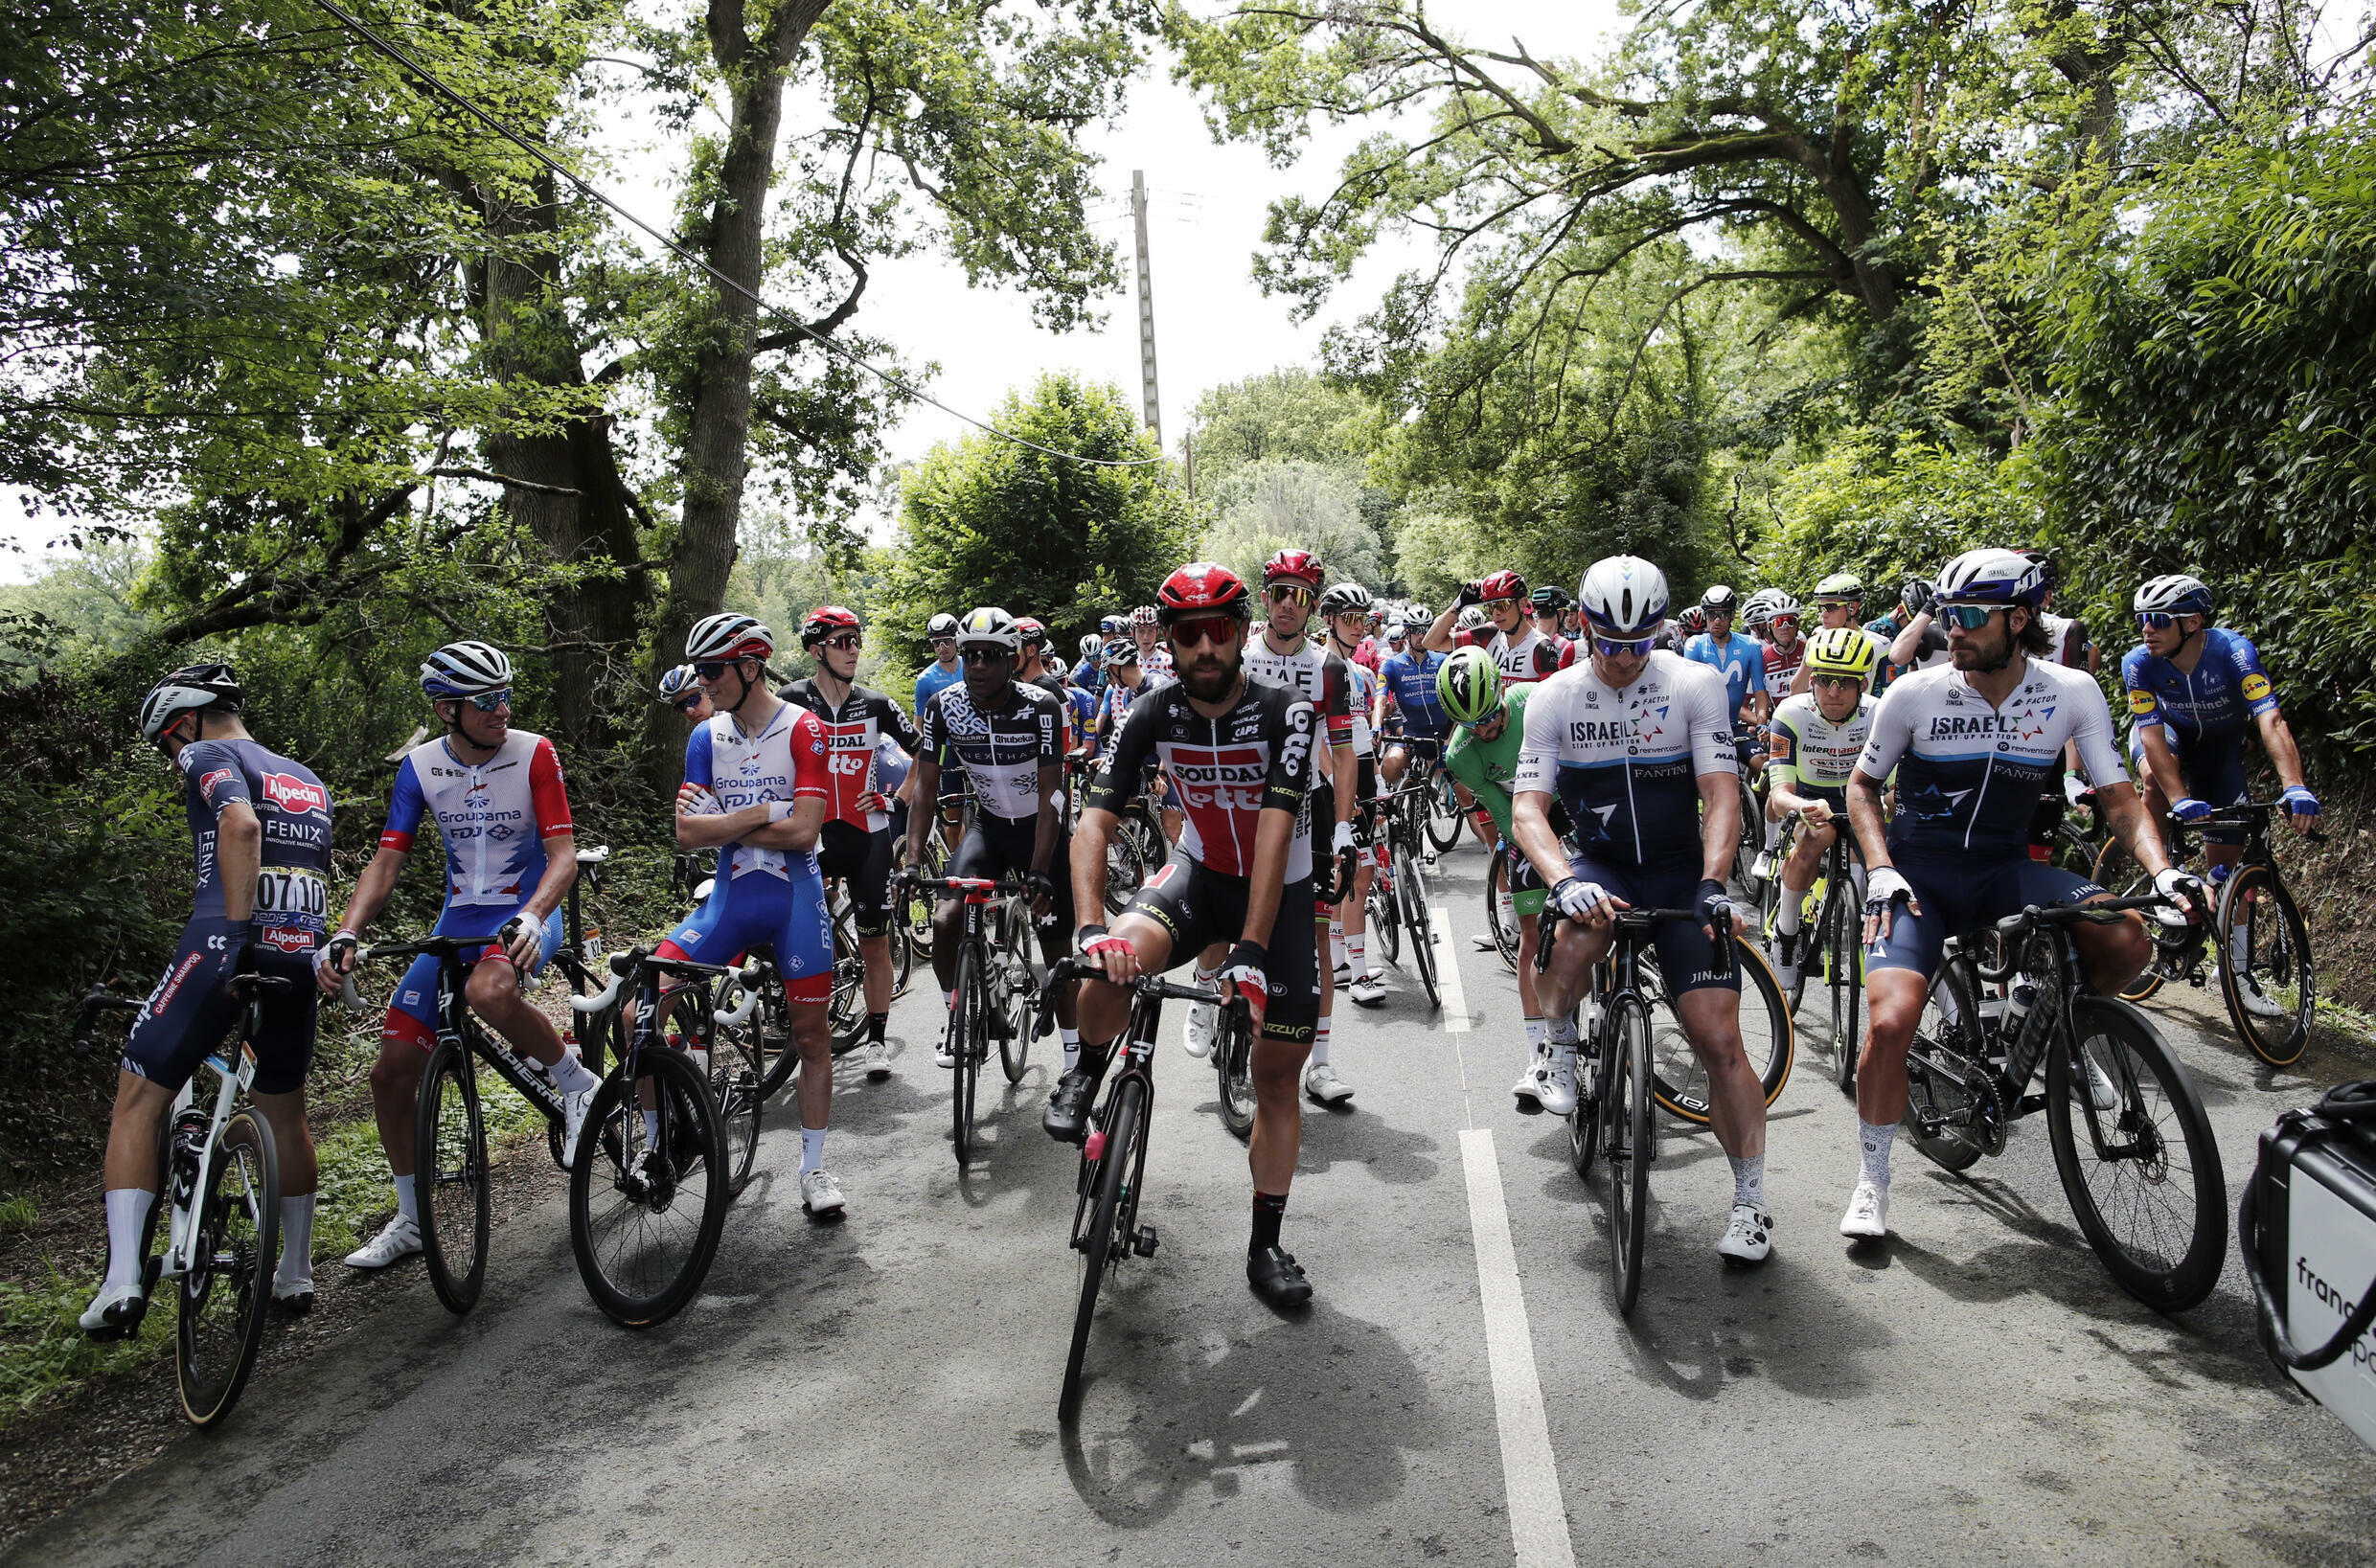 2021-06-29T120009Z_1568046769_UP1EH6T0XC7L8_RTRMADP_3_CYCLING-FRANCE